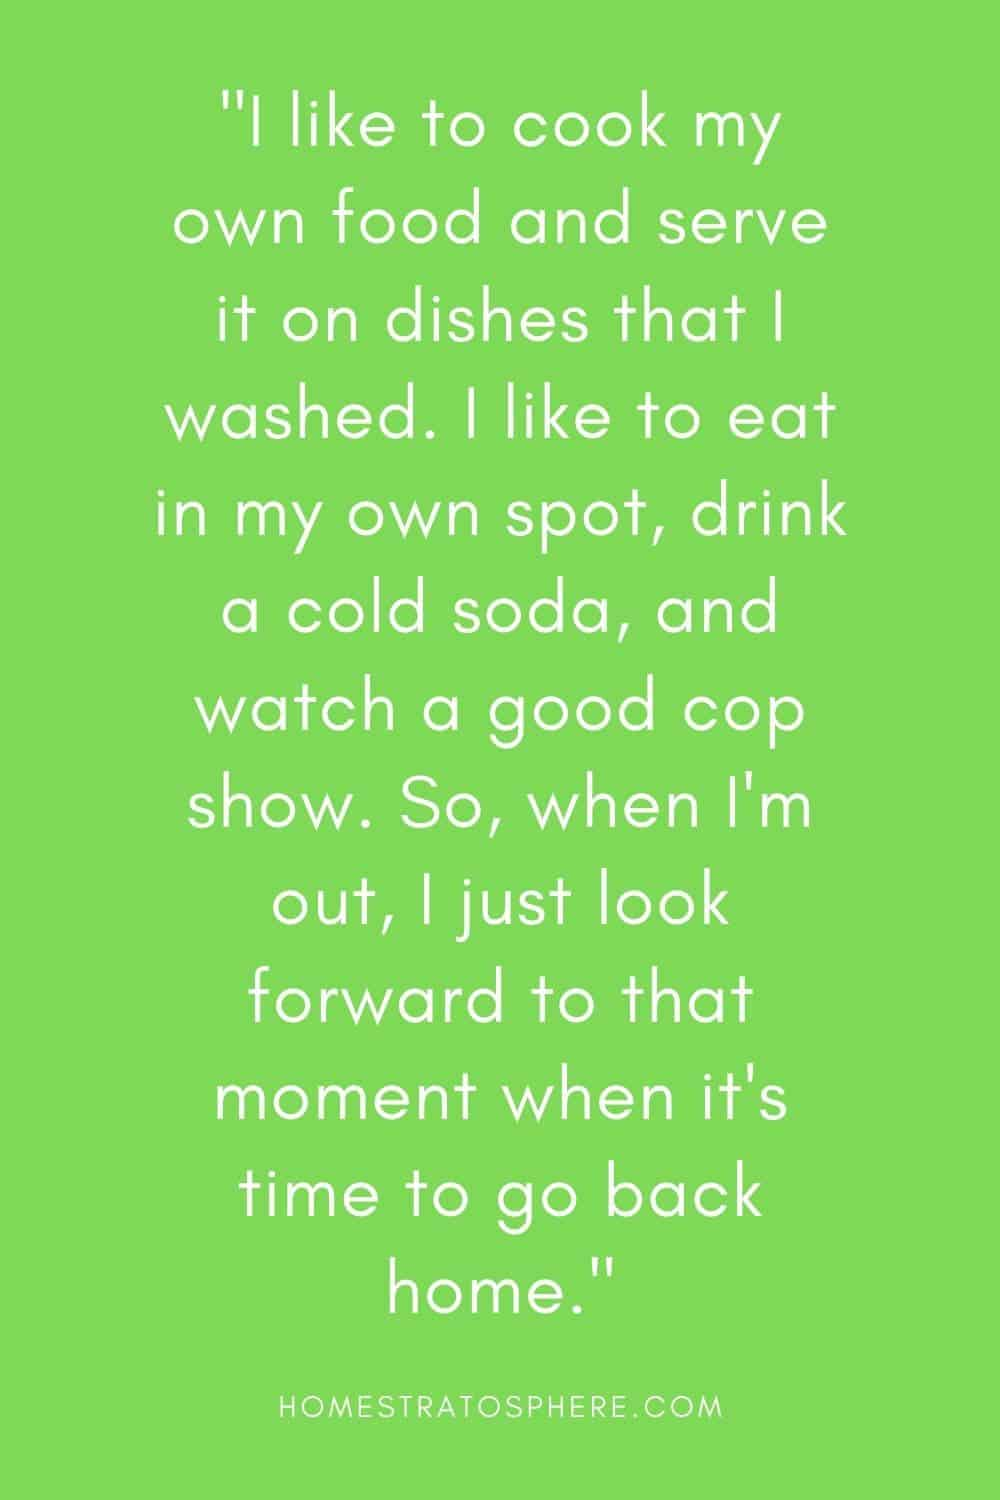 """""""I like to cook my own food and serve it on dishes that I washed. I like to eat in my own spot, drink a cold soda, and watch a good cop show. So, when I'm out, I just look forward to that moment when it's time to go back home."""""""